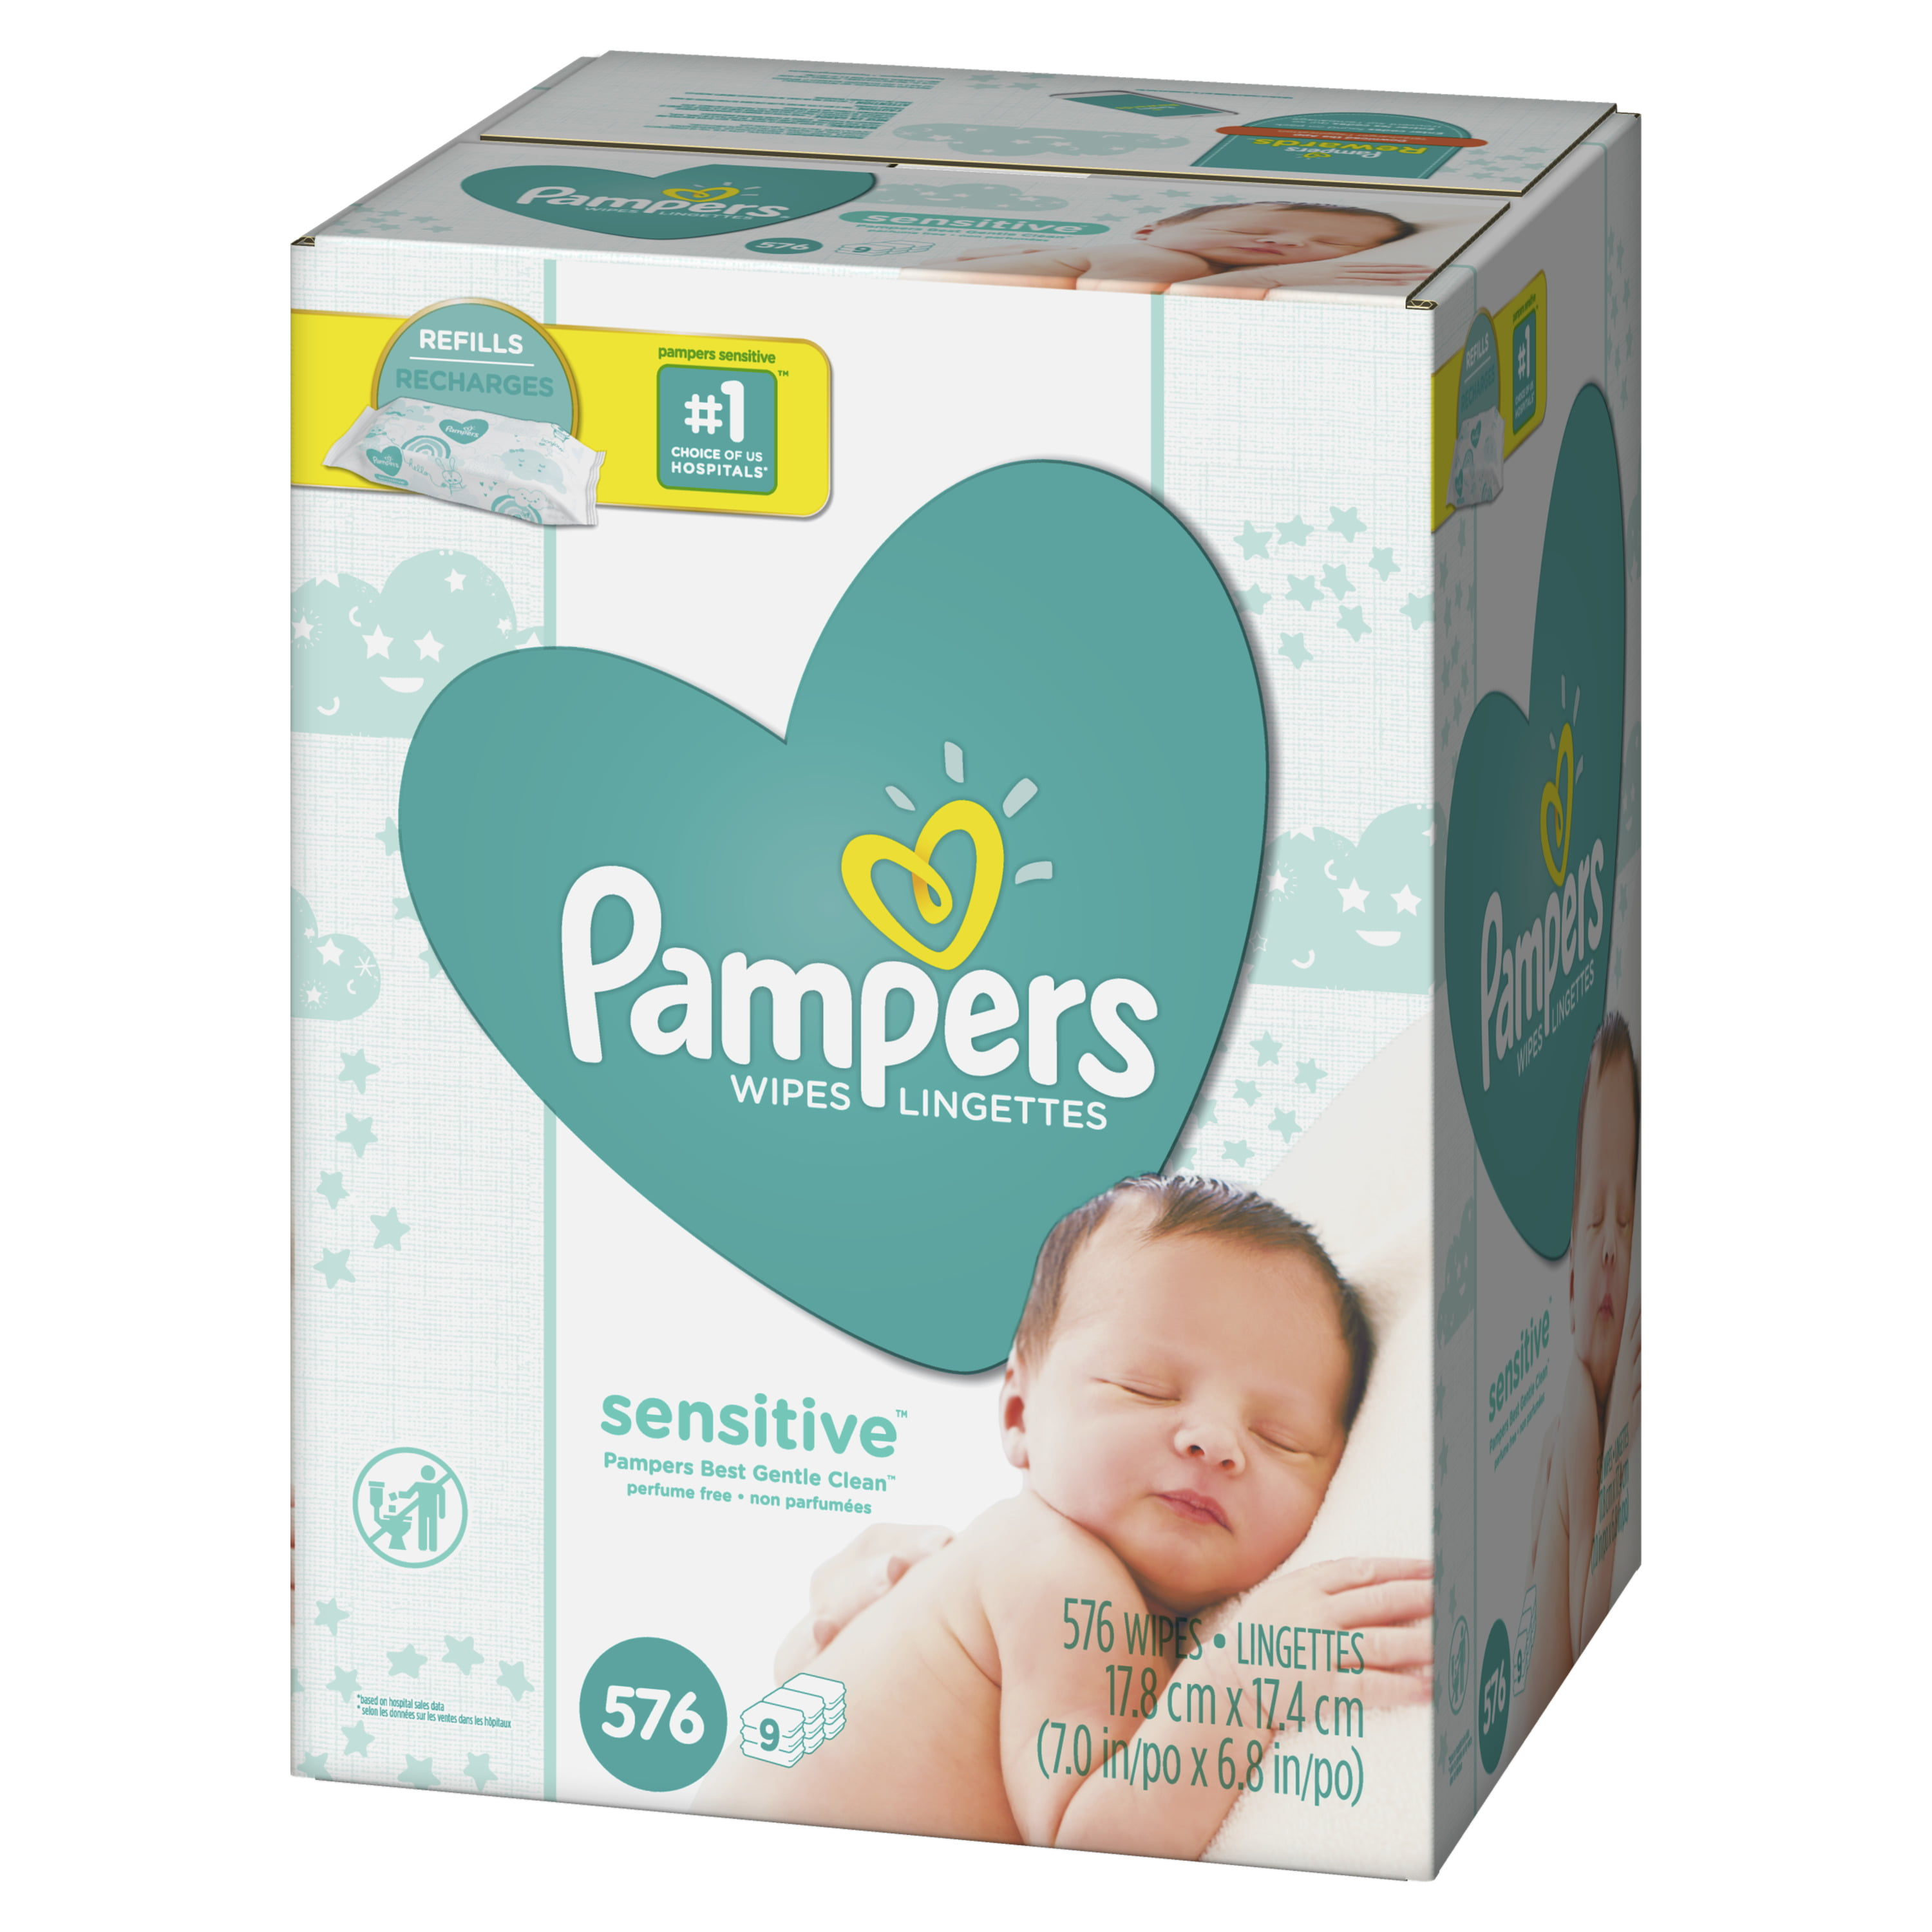 Pampers Sensitive Wipes Tub 64 Each Pack of 2